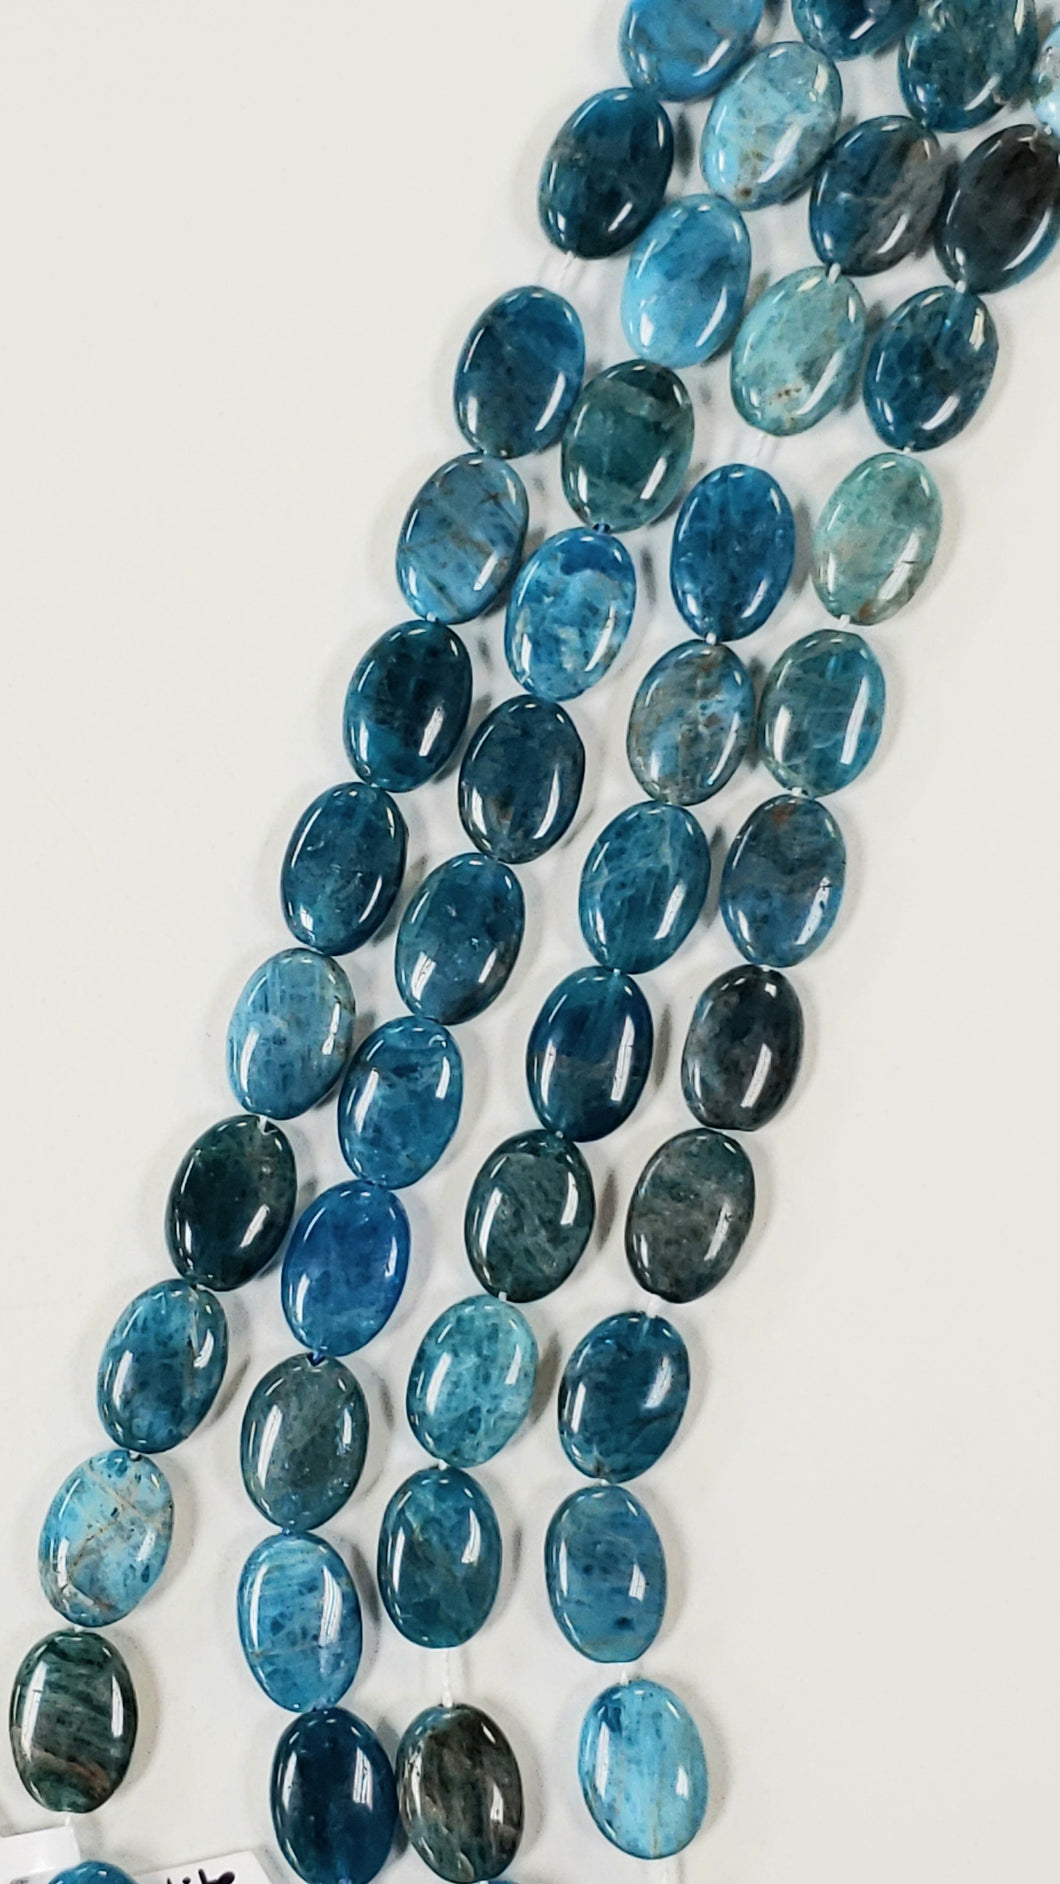 Blue Apatite Flat Oval Beads 10x14mm 7.5